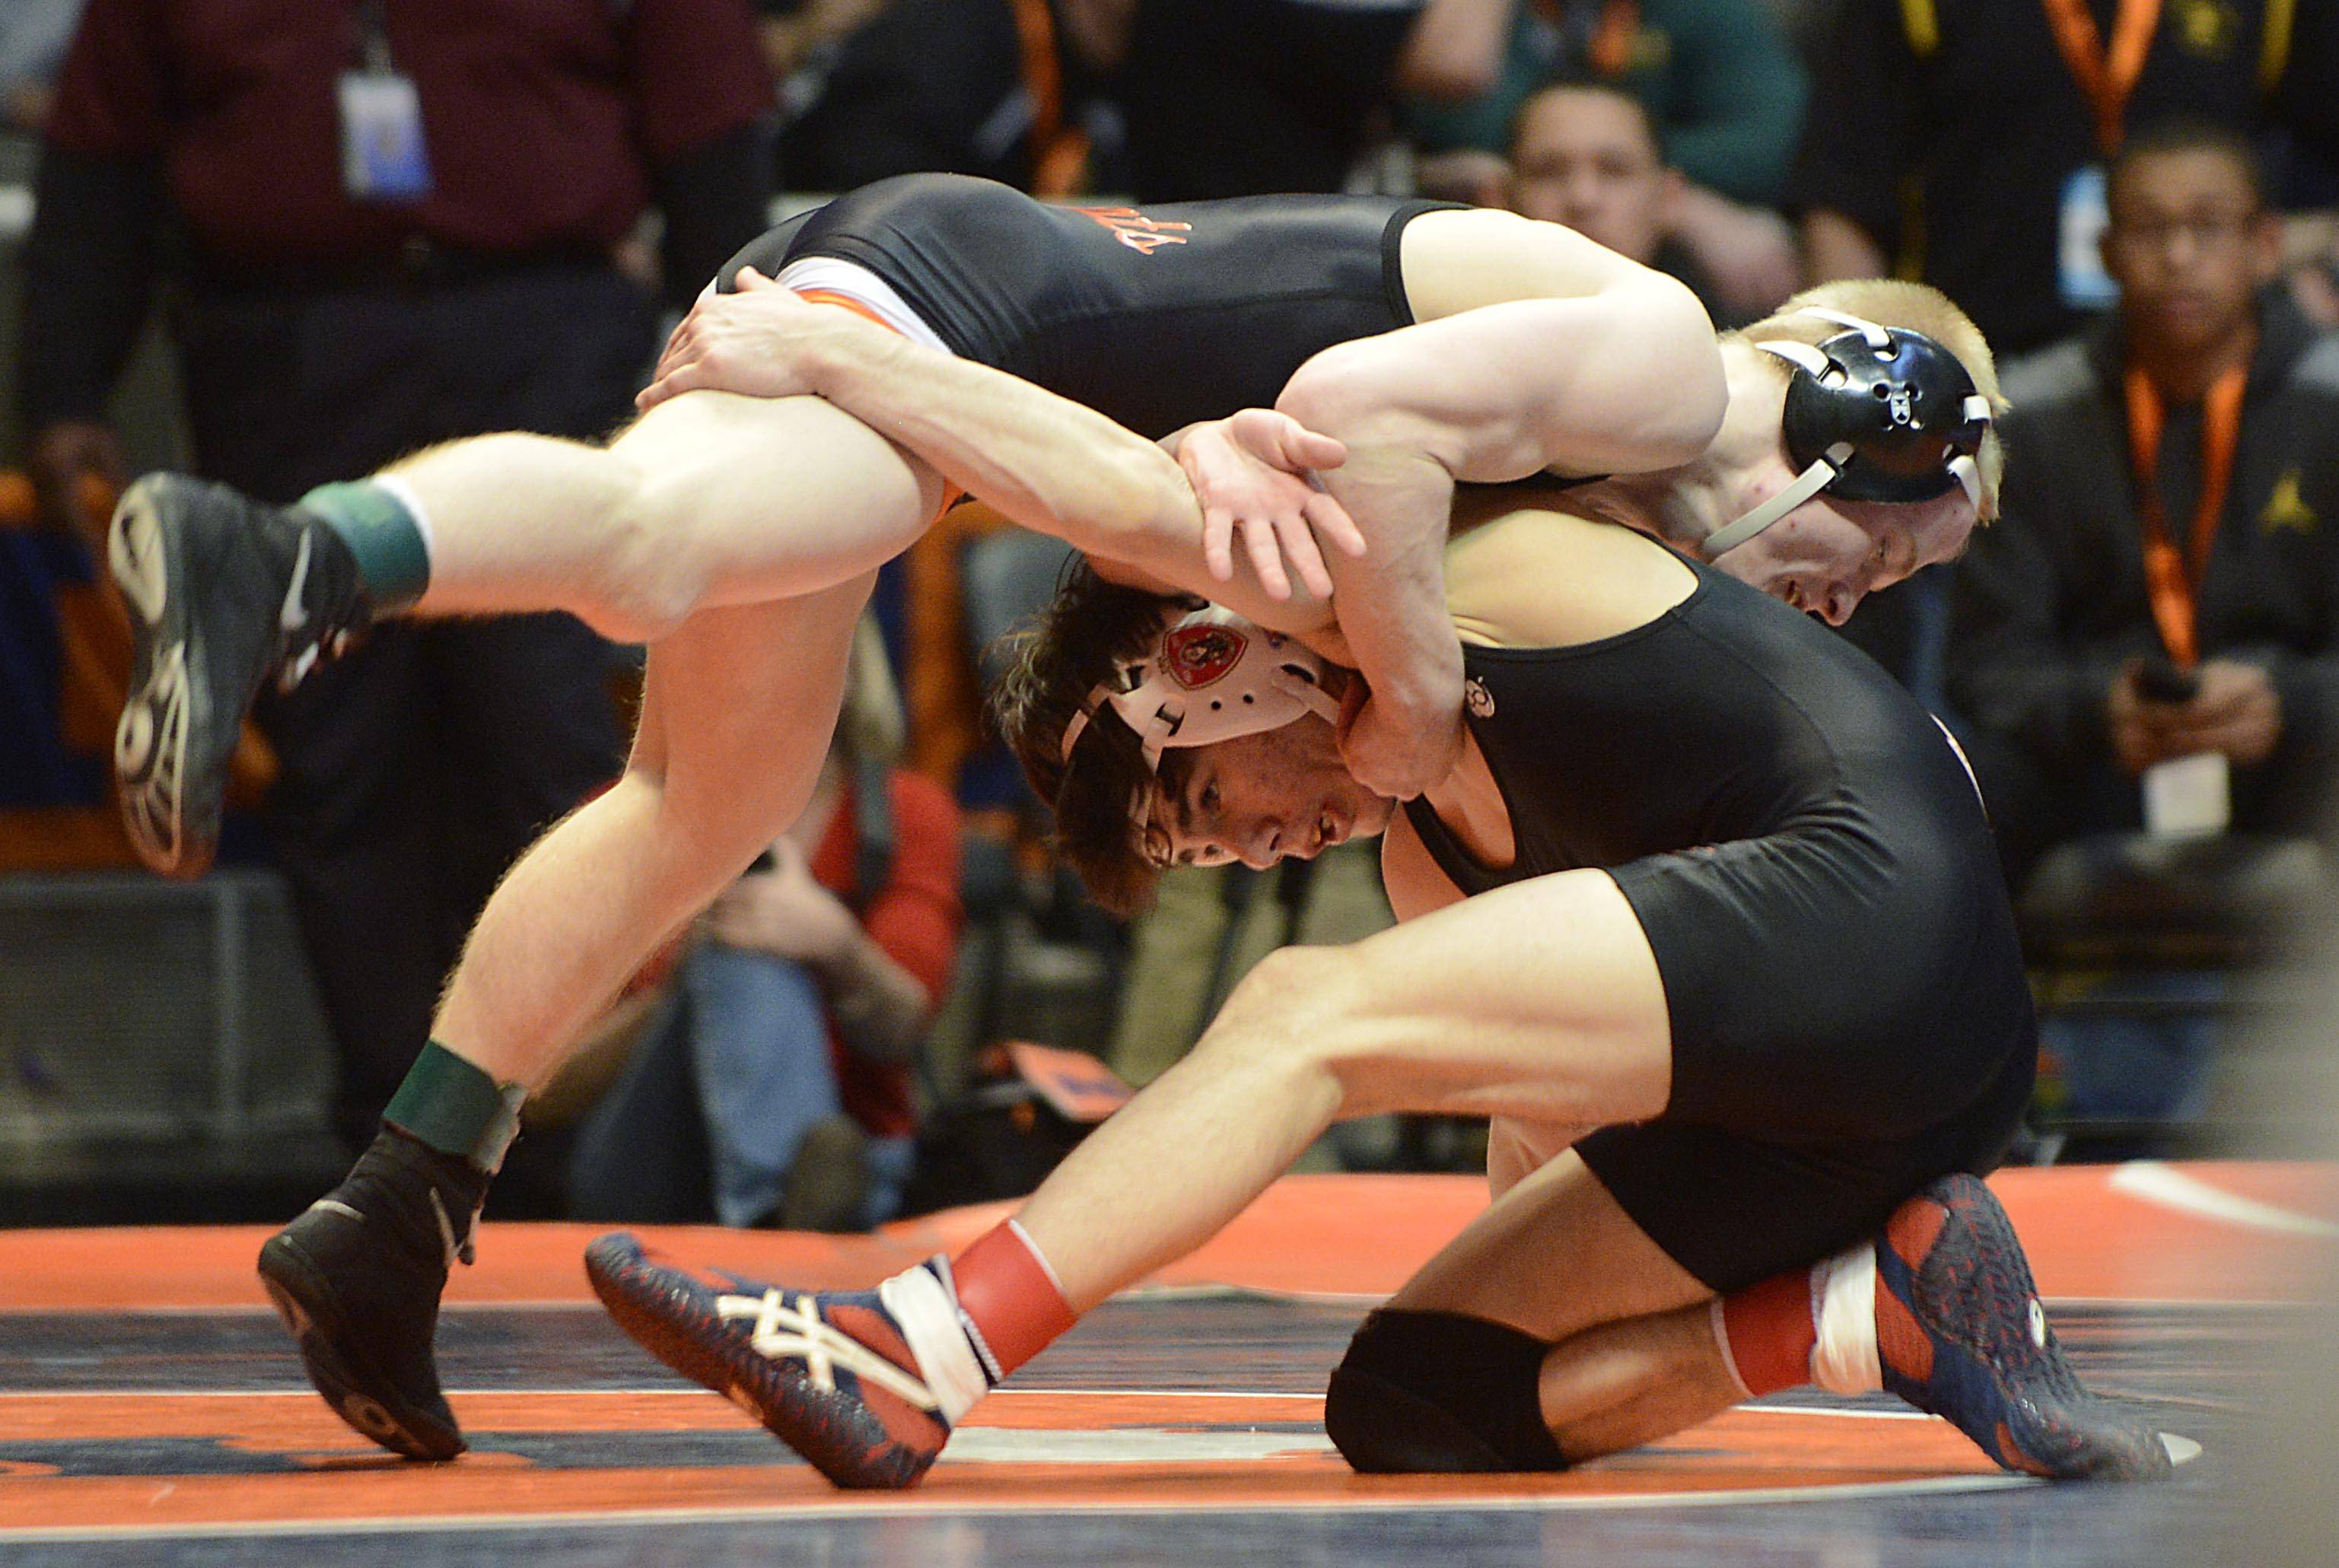 Steve Polakowski of Libertyville High School, top, competes against Mark Duda of Marist High School Friday in the 120-pound weight class semifinals of the wrestling IHSA Class 3A state tournament at State Farm Center in Champaign.